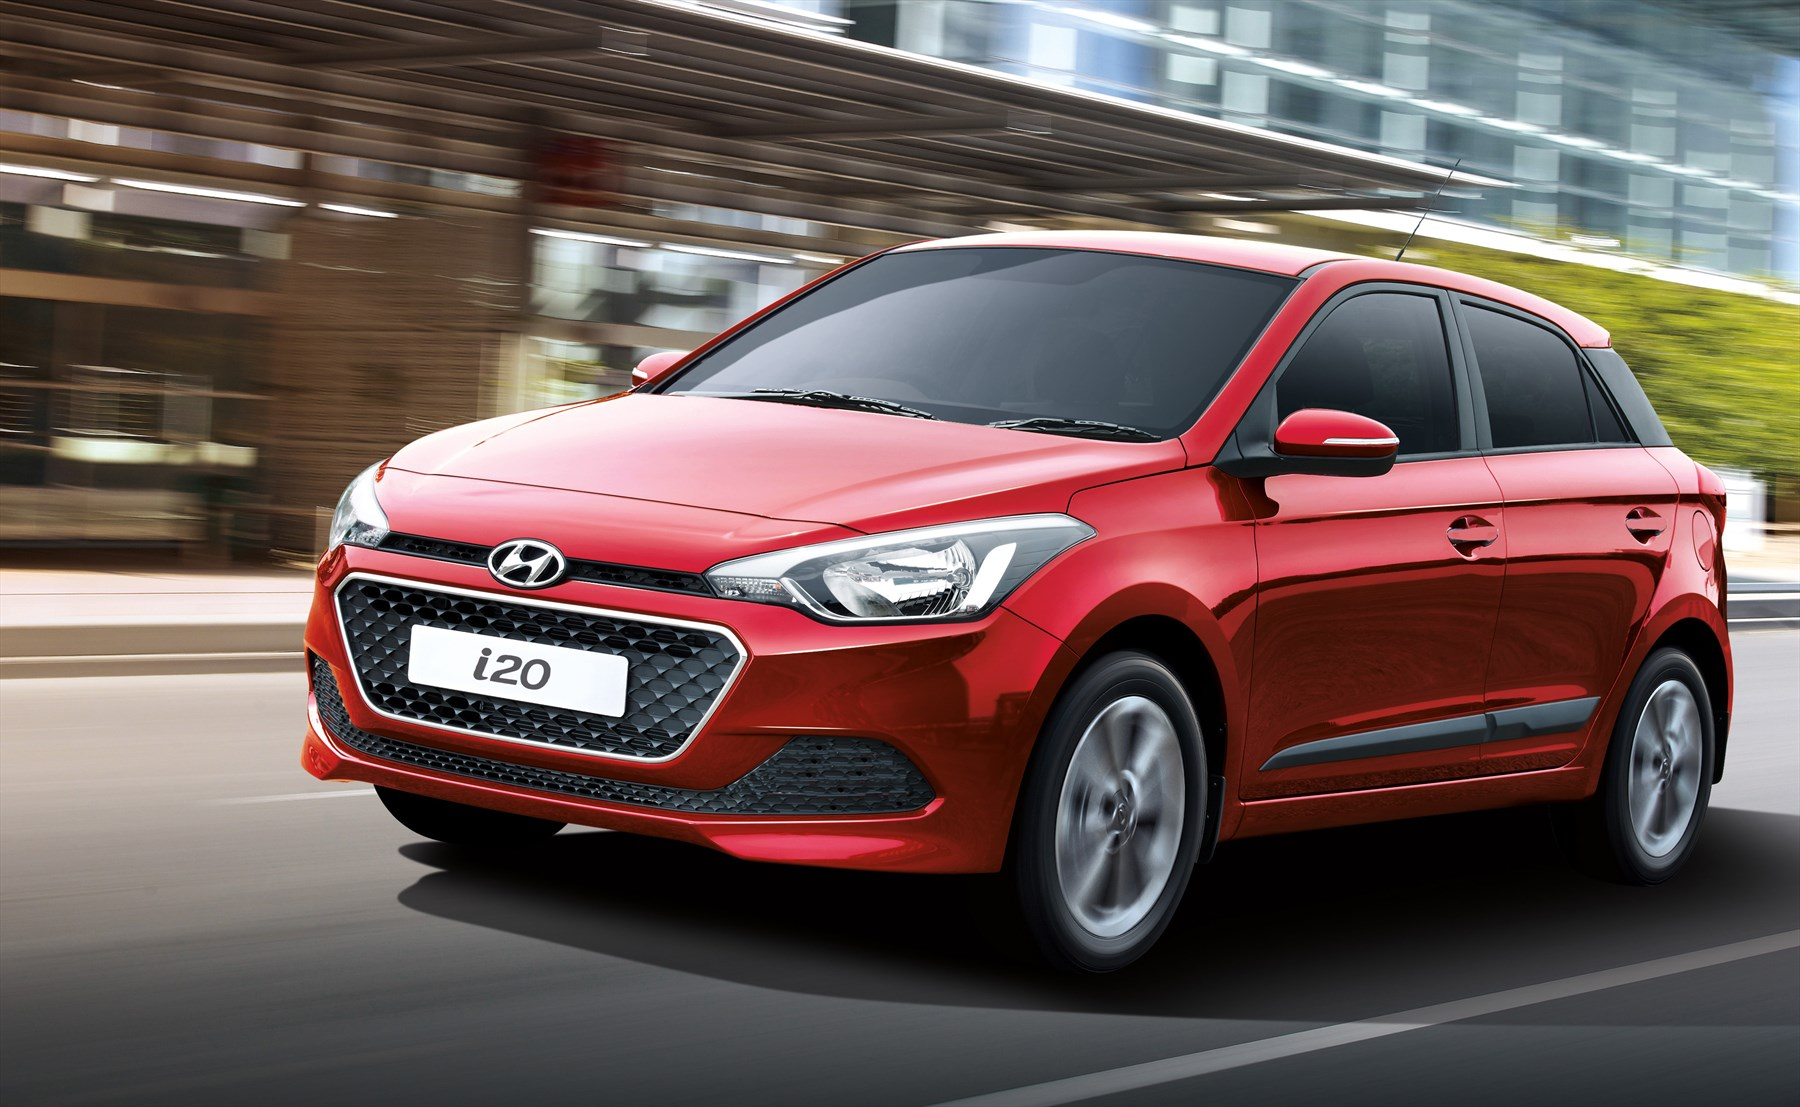 Hyundai grows i20 range with new 1.4-litre automatic derivative